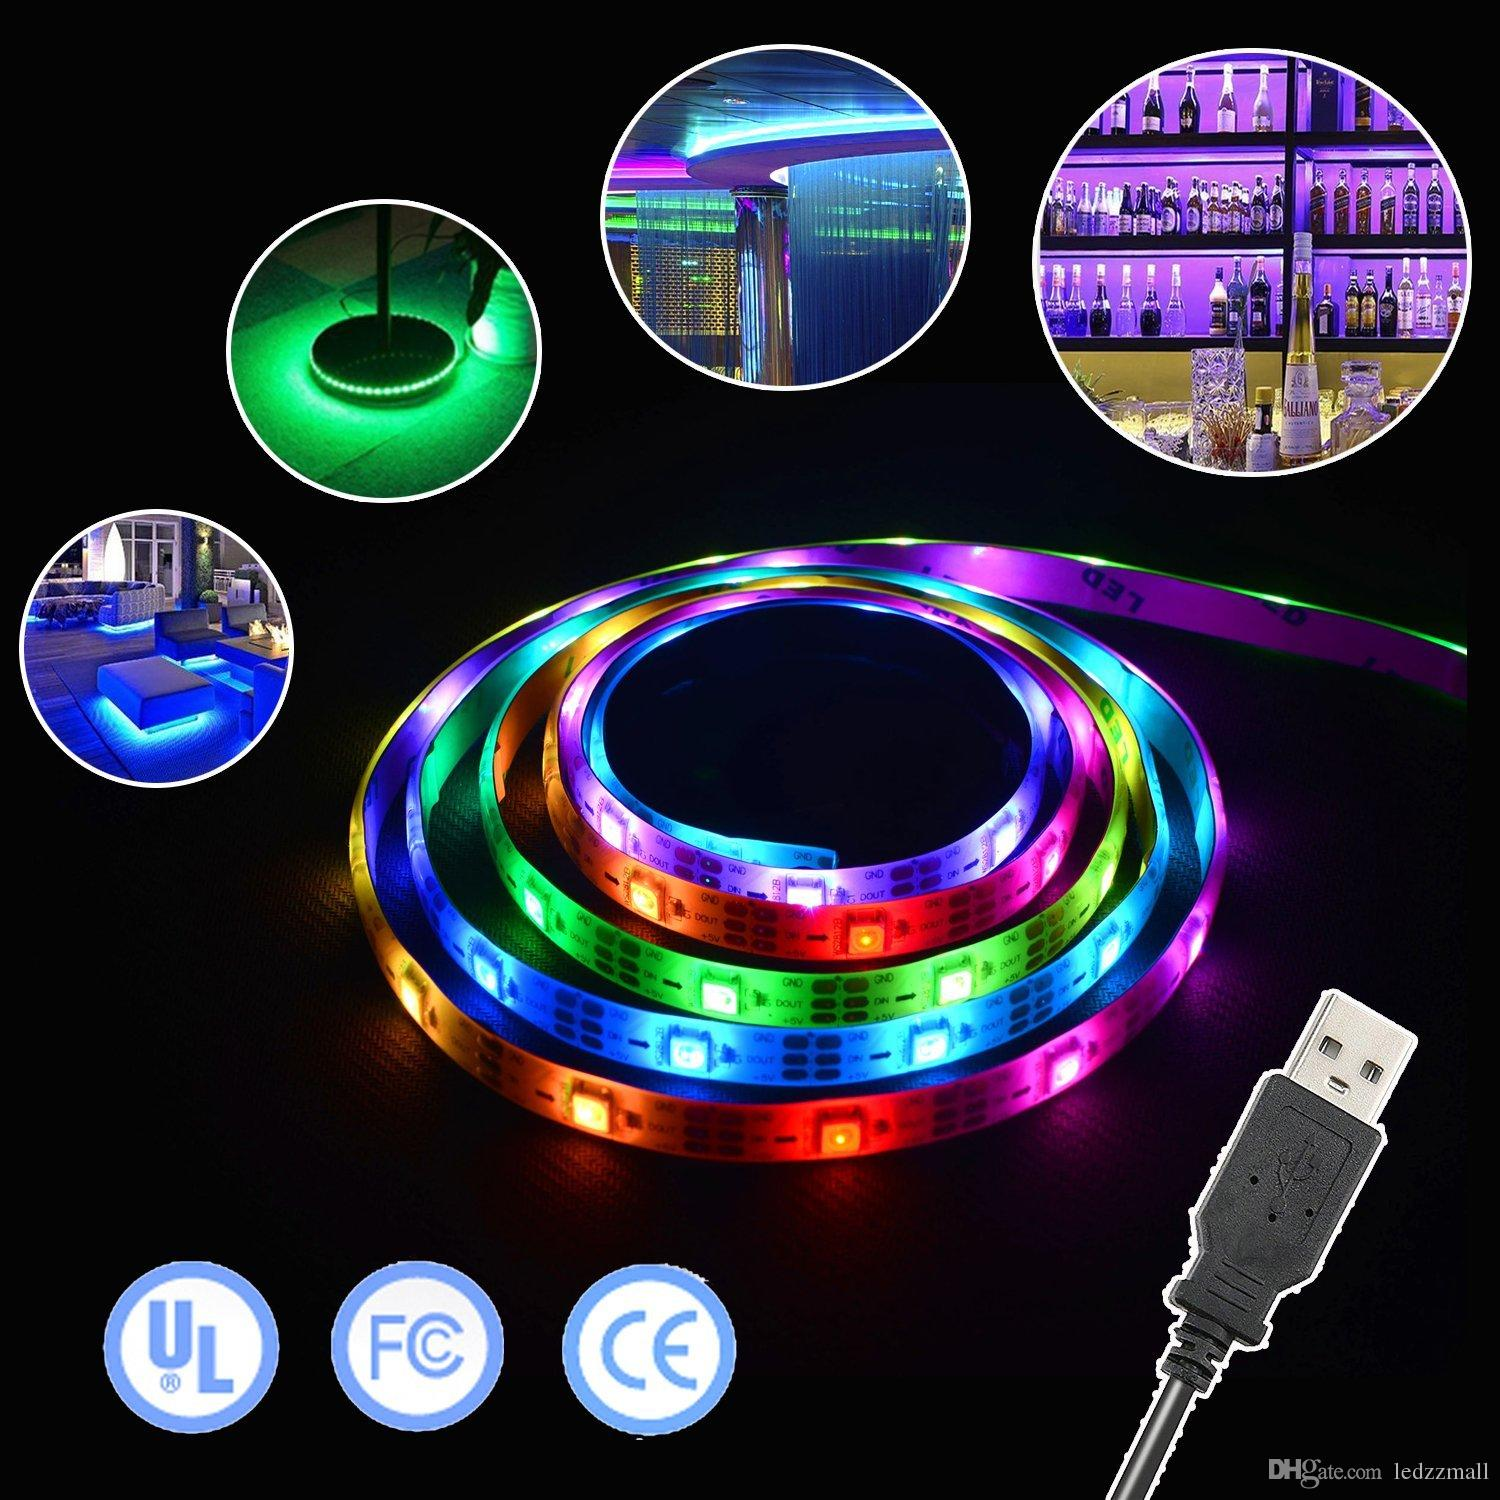 Music led light strip sound activated 2m rgb leds strip kit music led light strip sound activated 2m rgb leds strip kitwaterproof strip lights with remote controller 5v led strip striplights from ledzzmall aloadofball